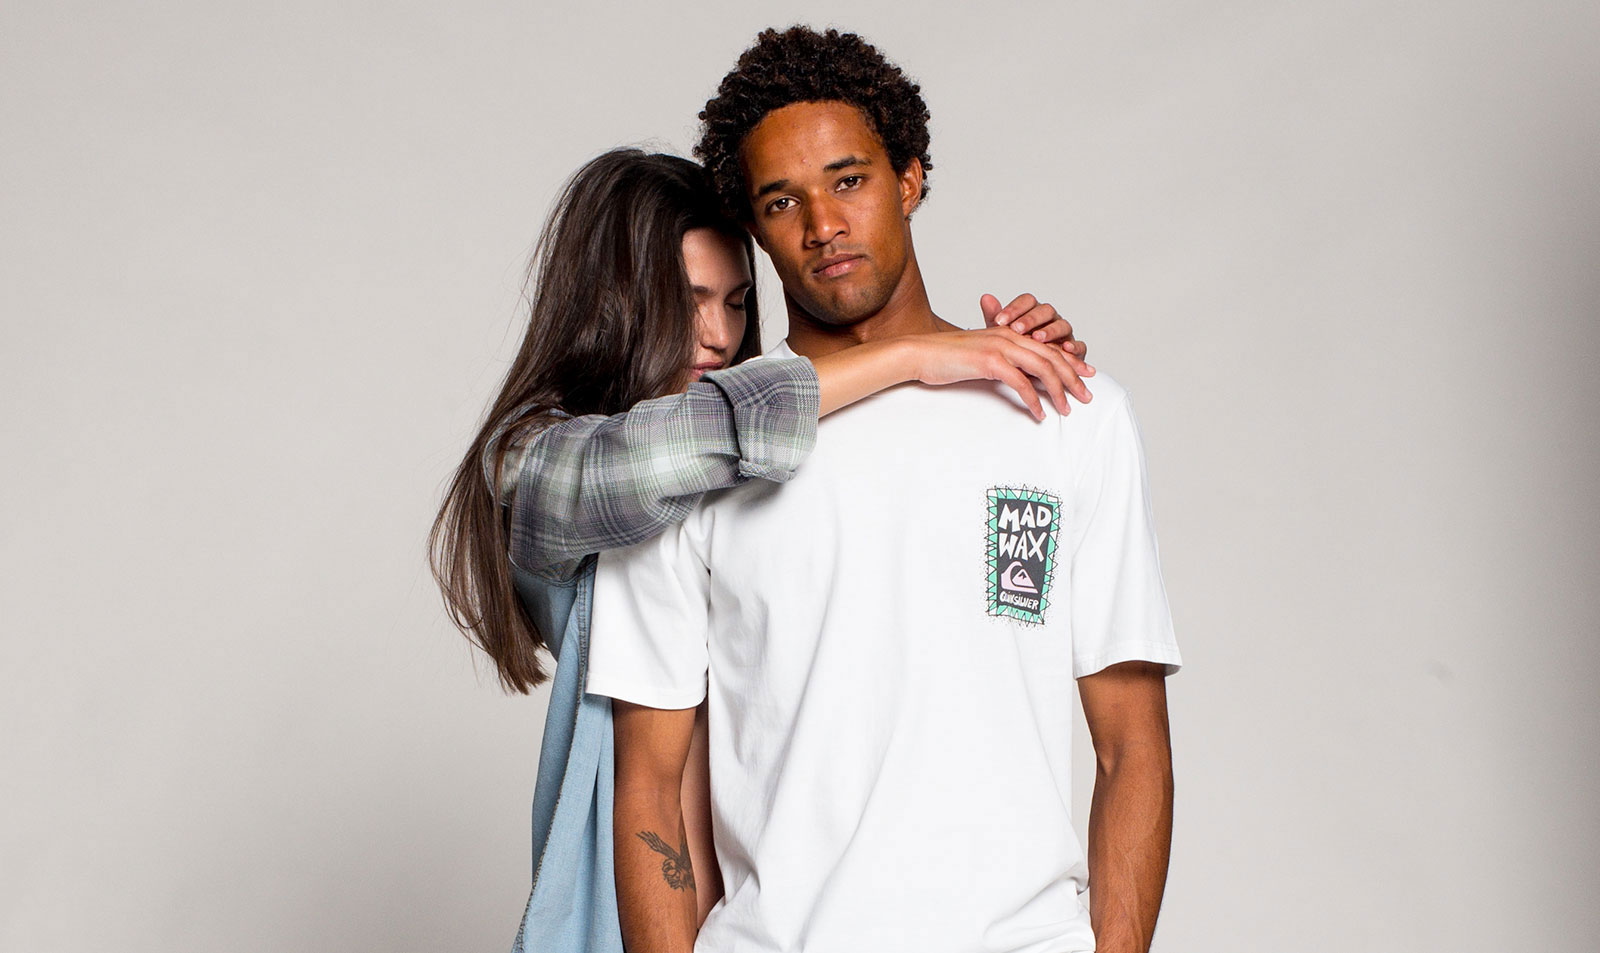 Girl hugging man with white tshirt